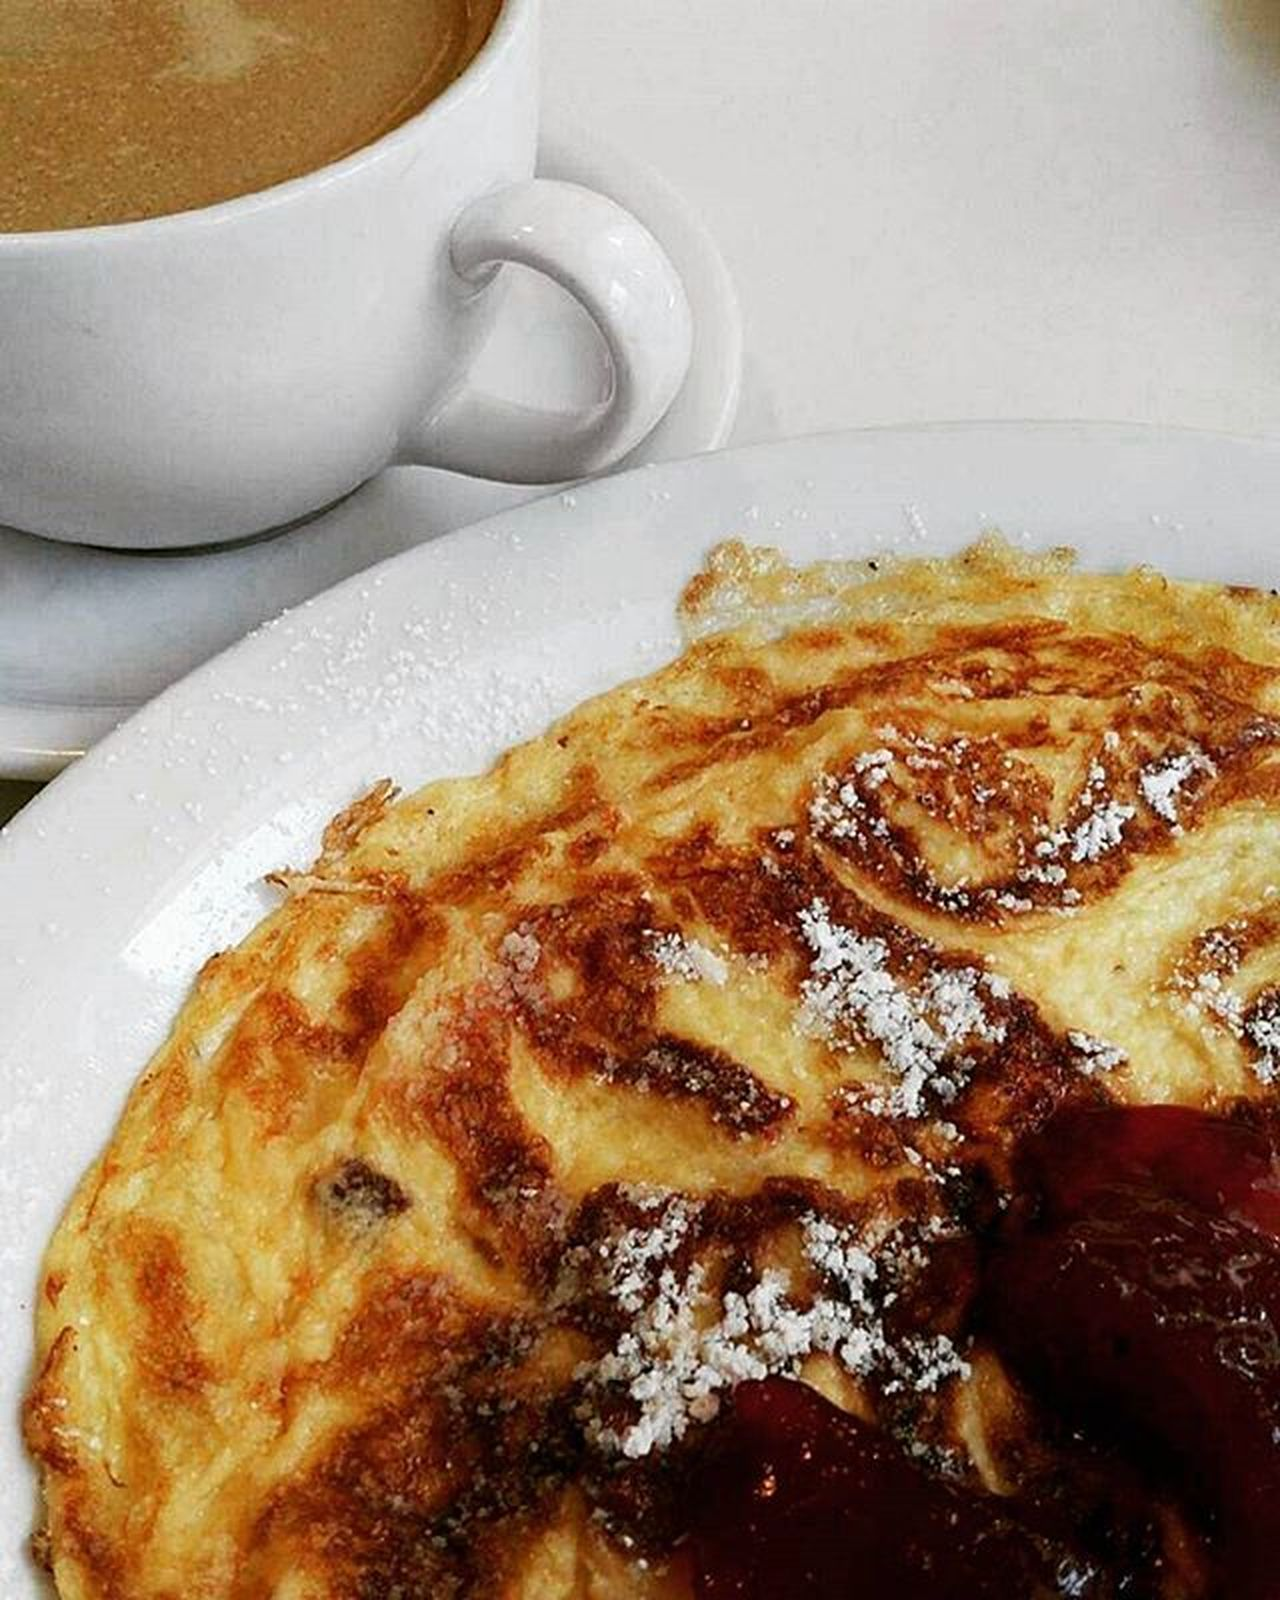 Goodmorning Warsaw Breakfast Coffee Omlet Sweet Sunny Day Blogger Love Food Delicous Beauty Trip Ladies Lifestyle Jam Milk Bar